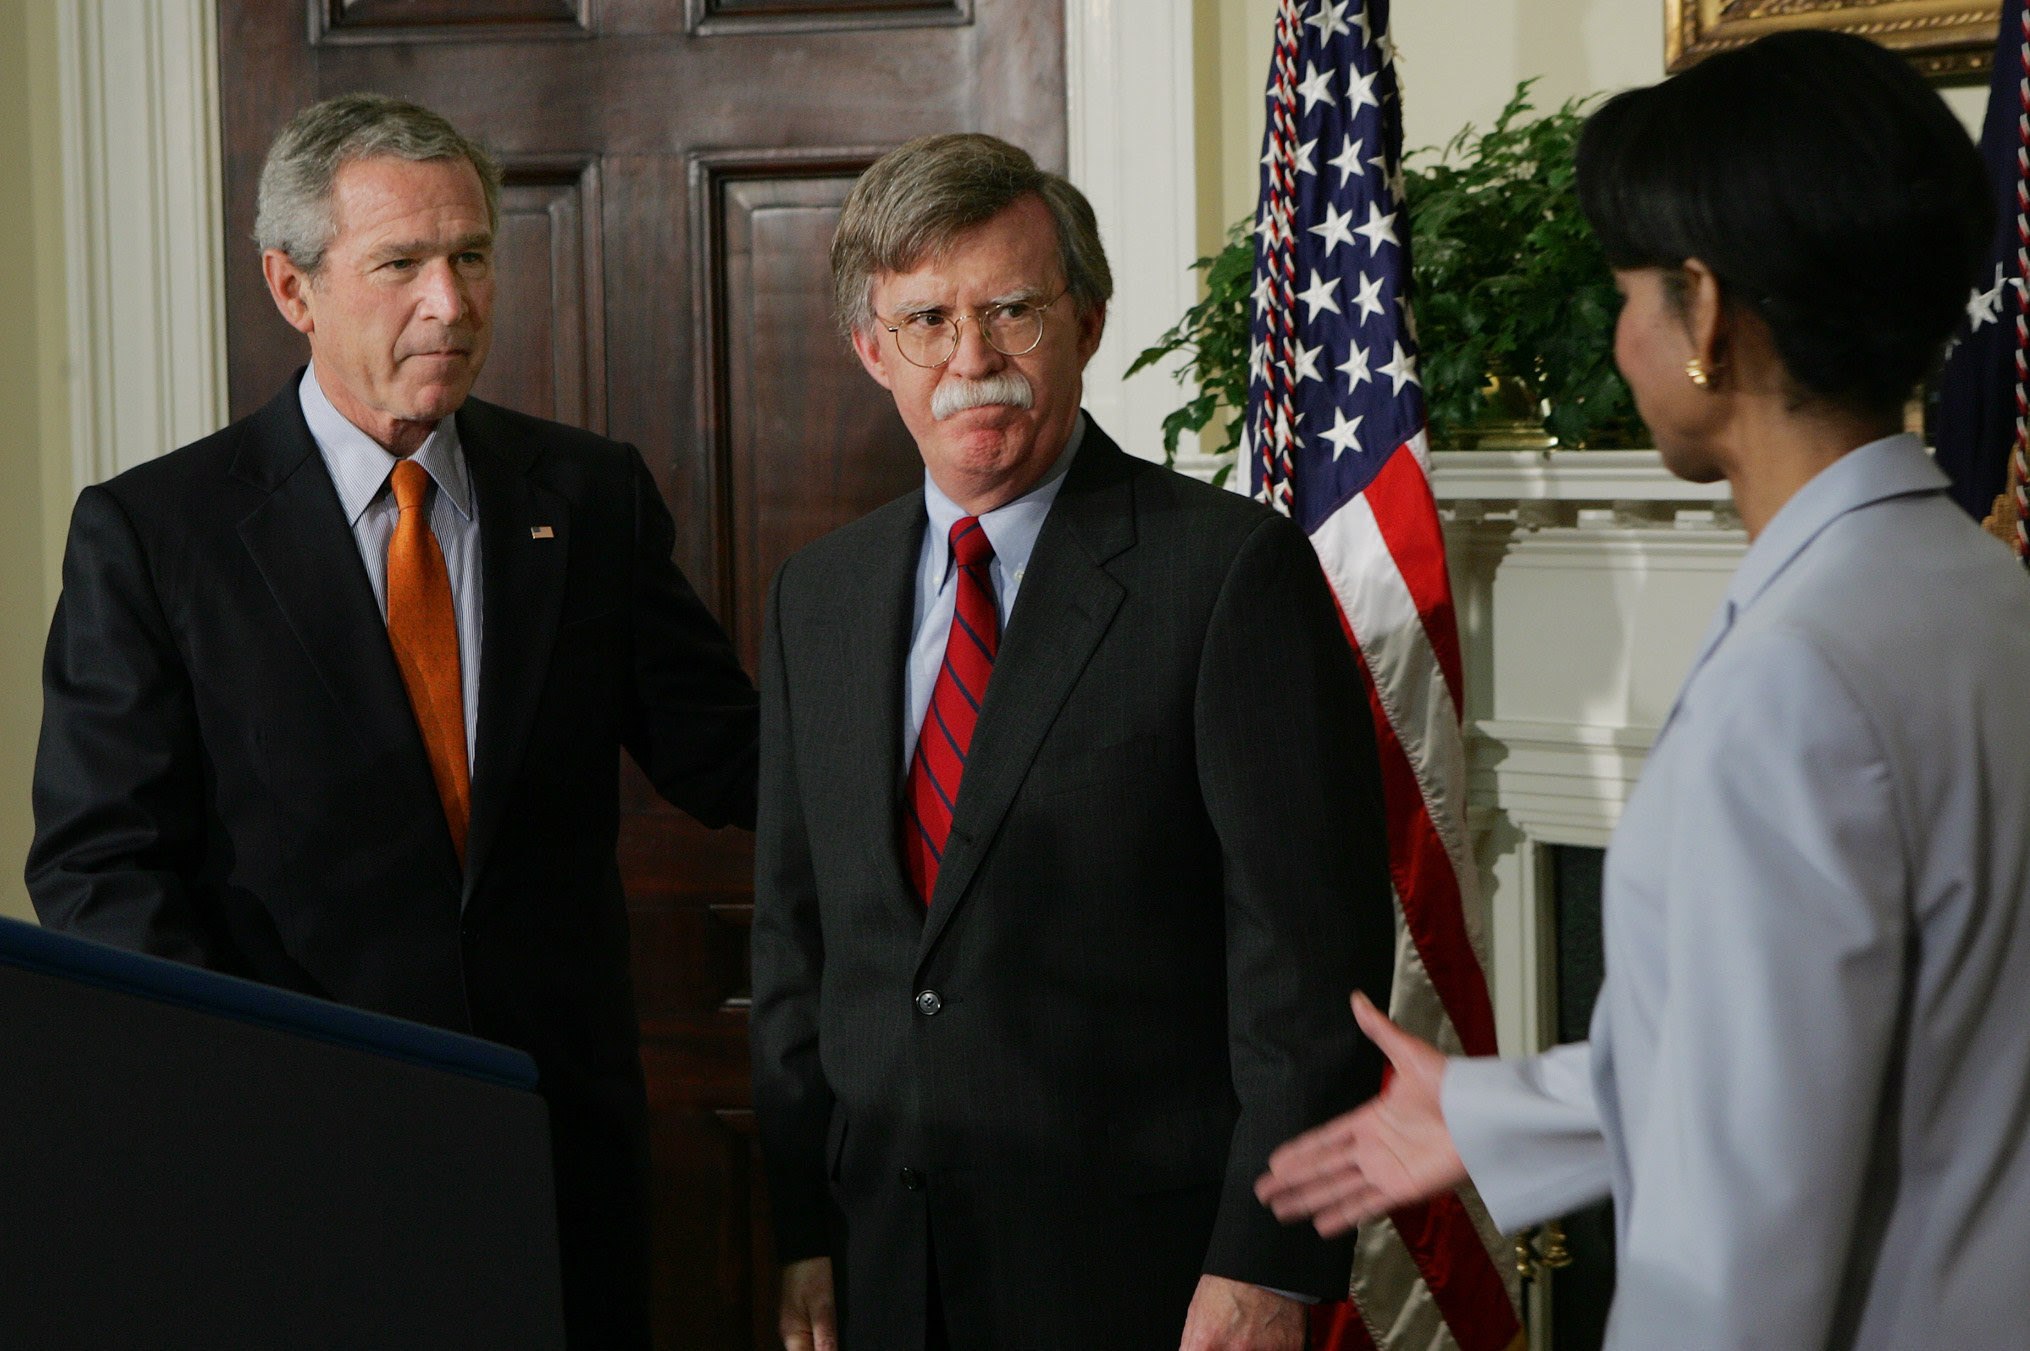 President George W. Bush appointed Mr. Bolton during a congressional recess in August 2005.